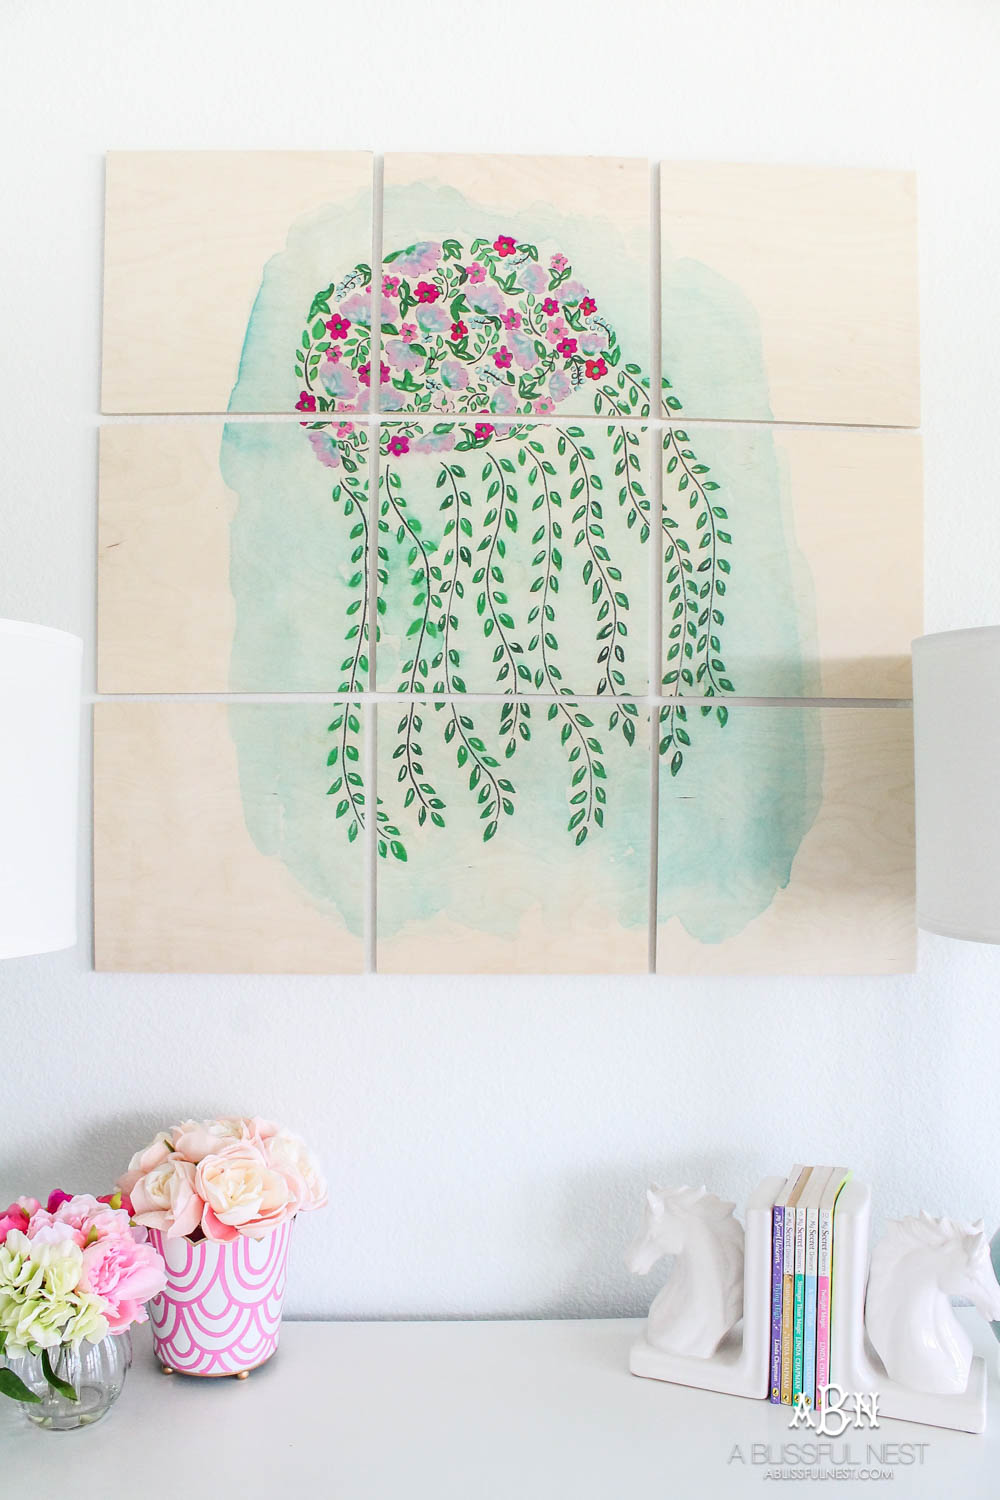 The sweetest little girls room updated with custom wall artwork! #ABlissfulNest #ad #society6